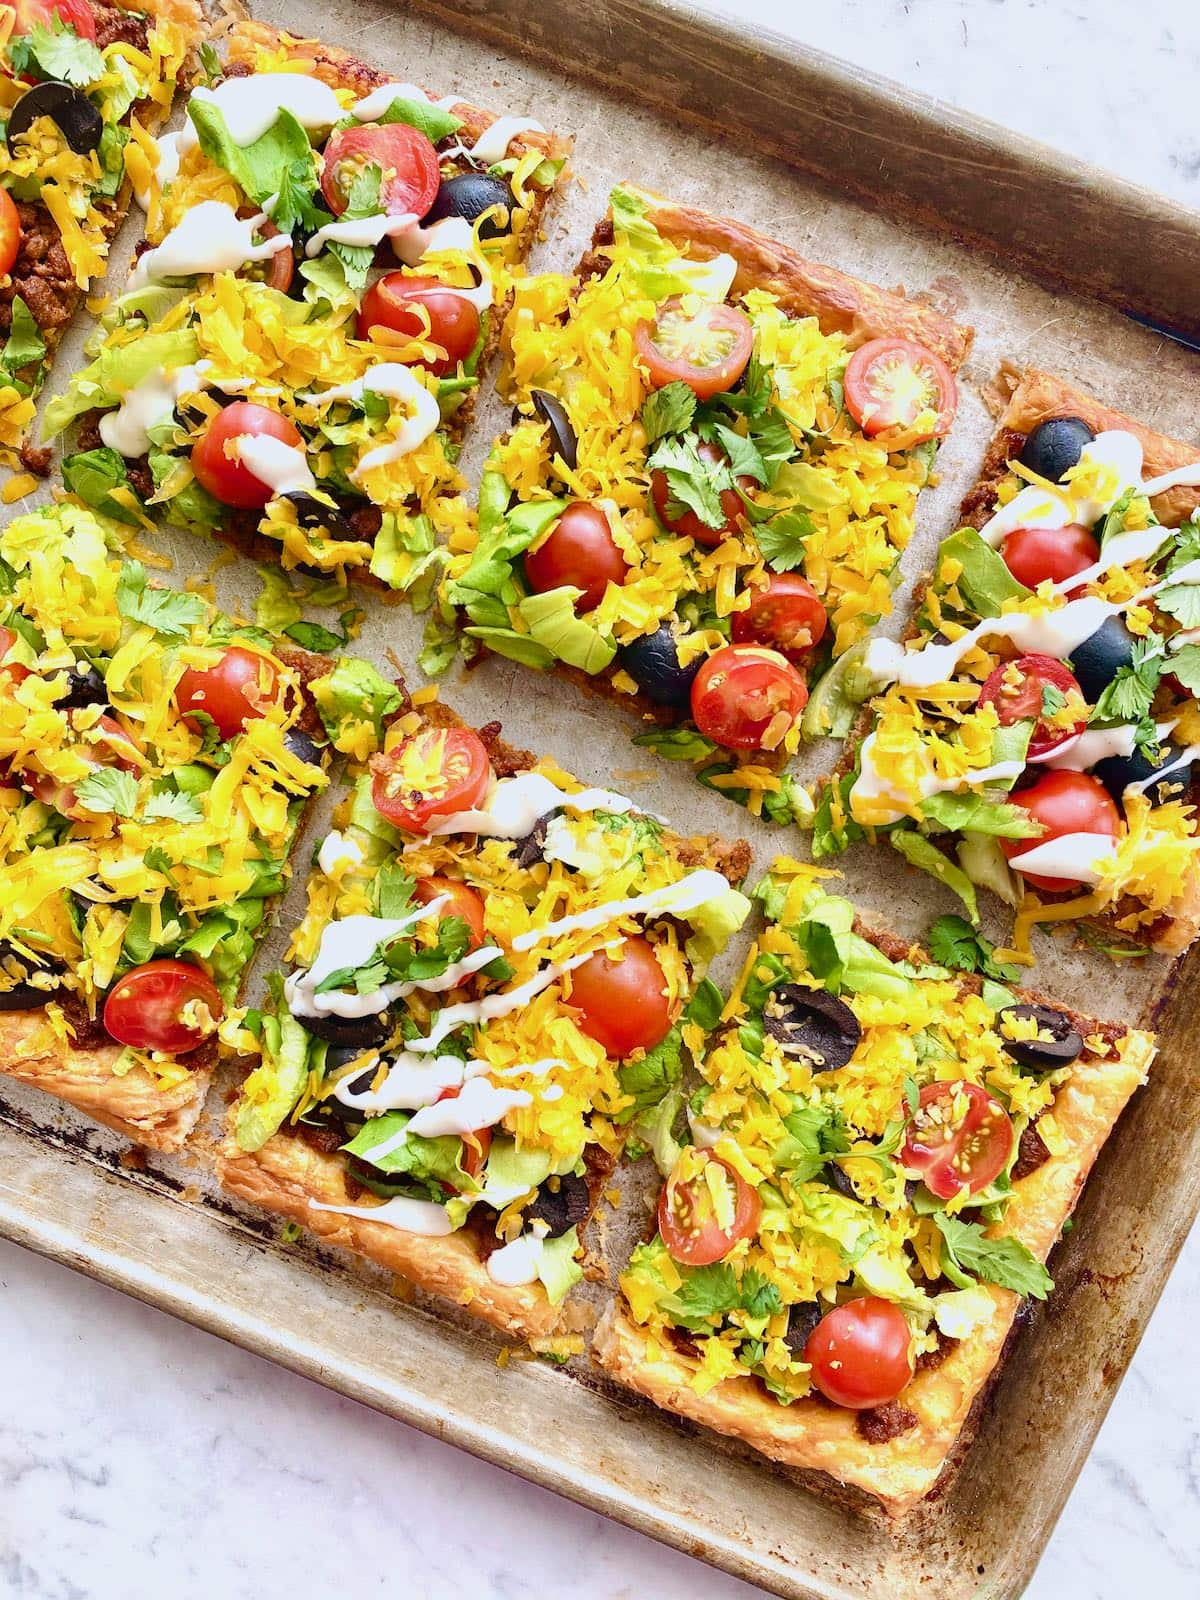 sheet pan filled with puff pastry tacos including toppings like lettuce, tomatoes and cheese with a sour cream drizzle